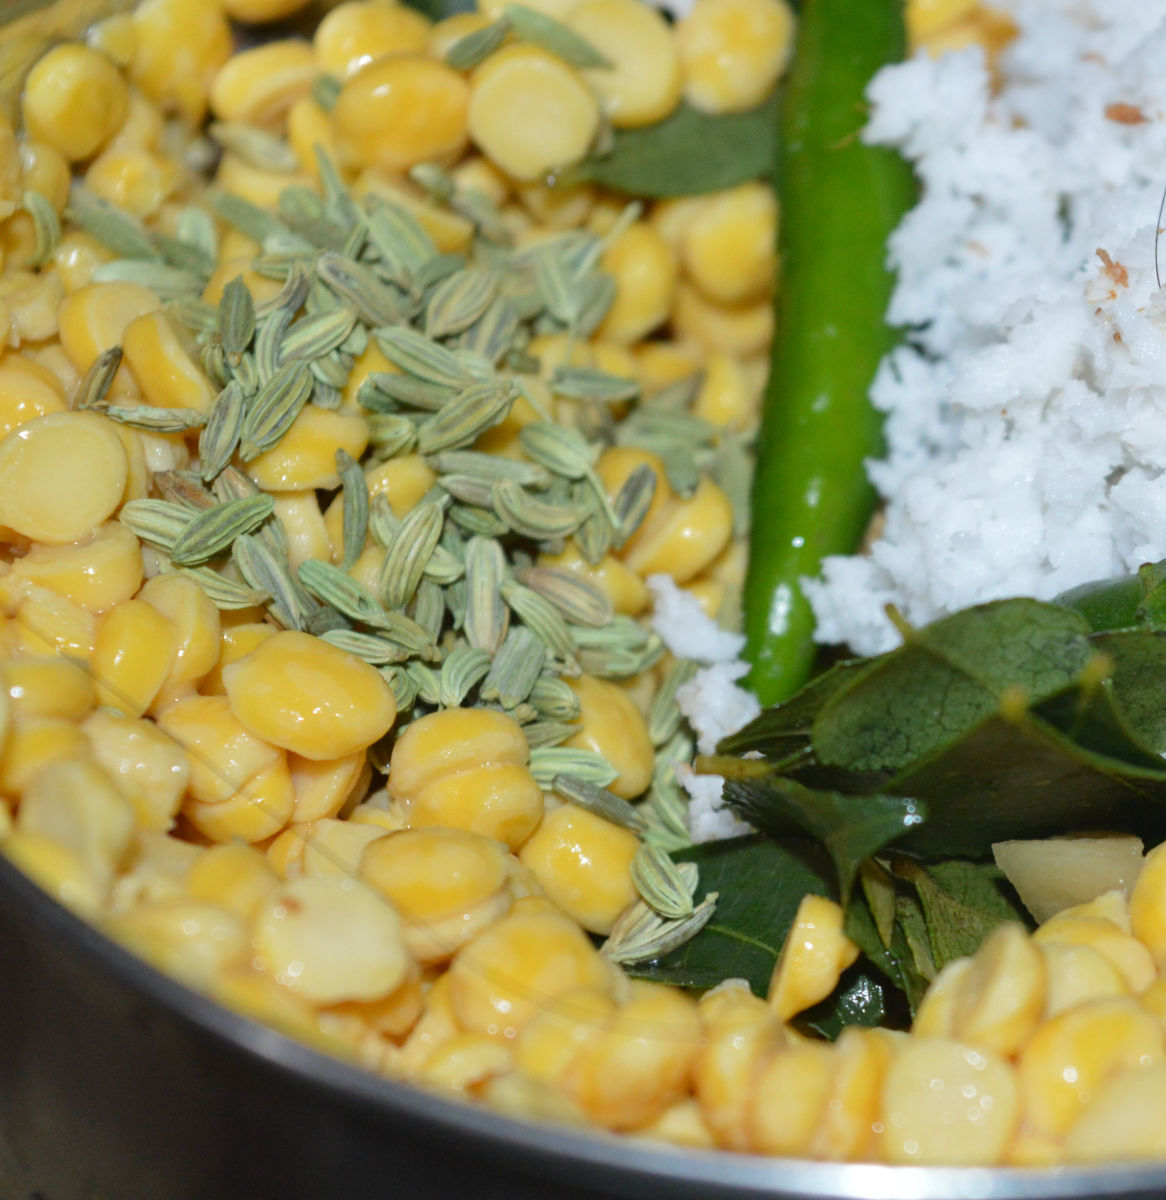 Add green chilies, ginger, garlic, curry leaves, fennel seeds, and grated coconut.